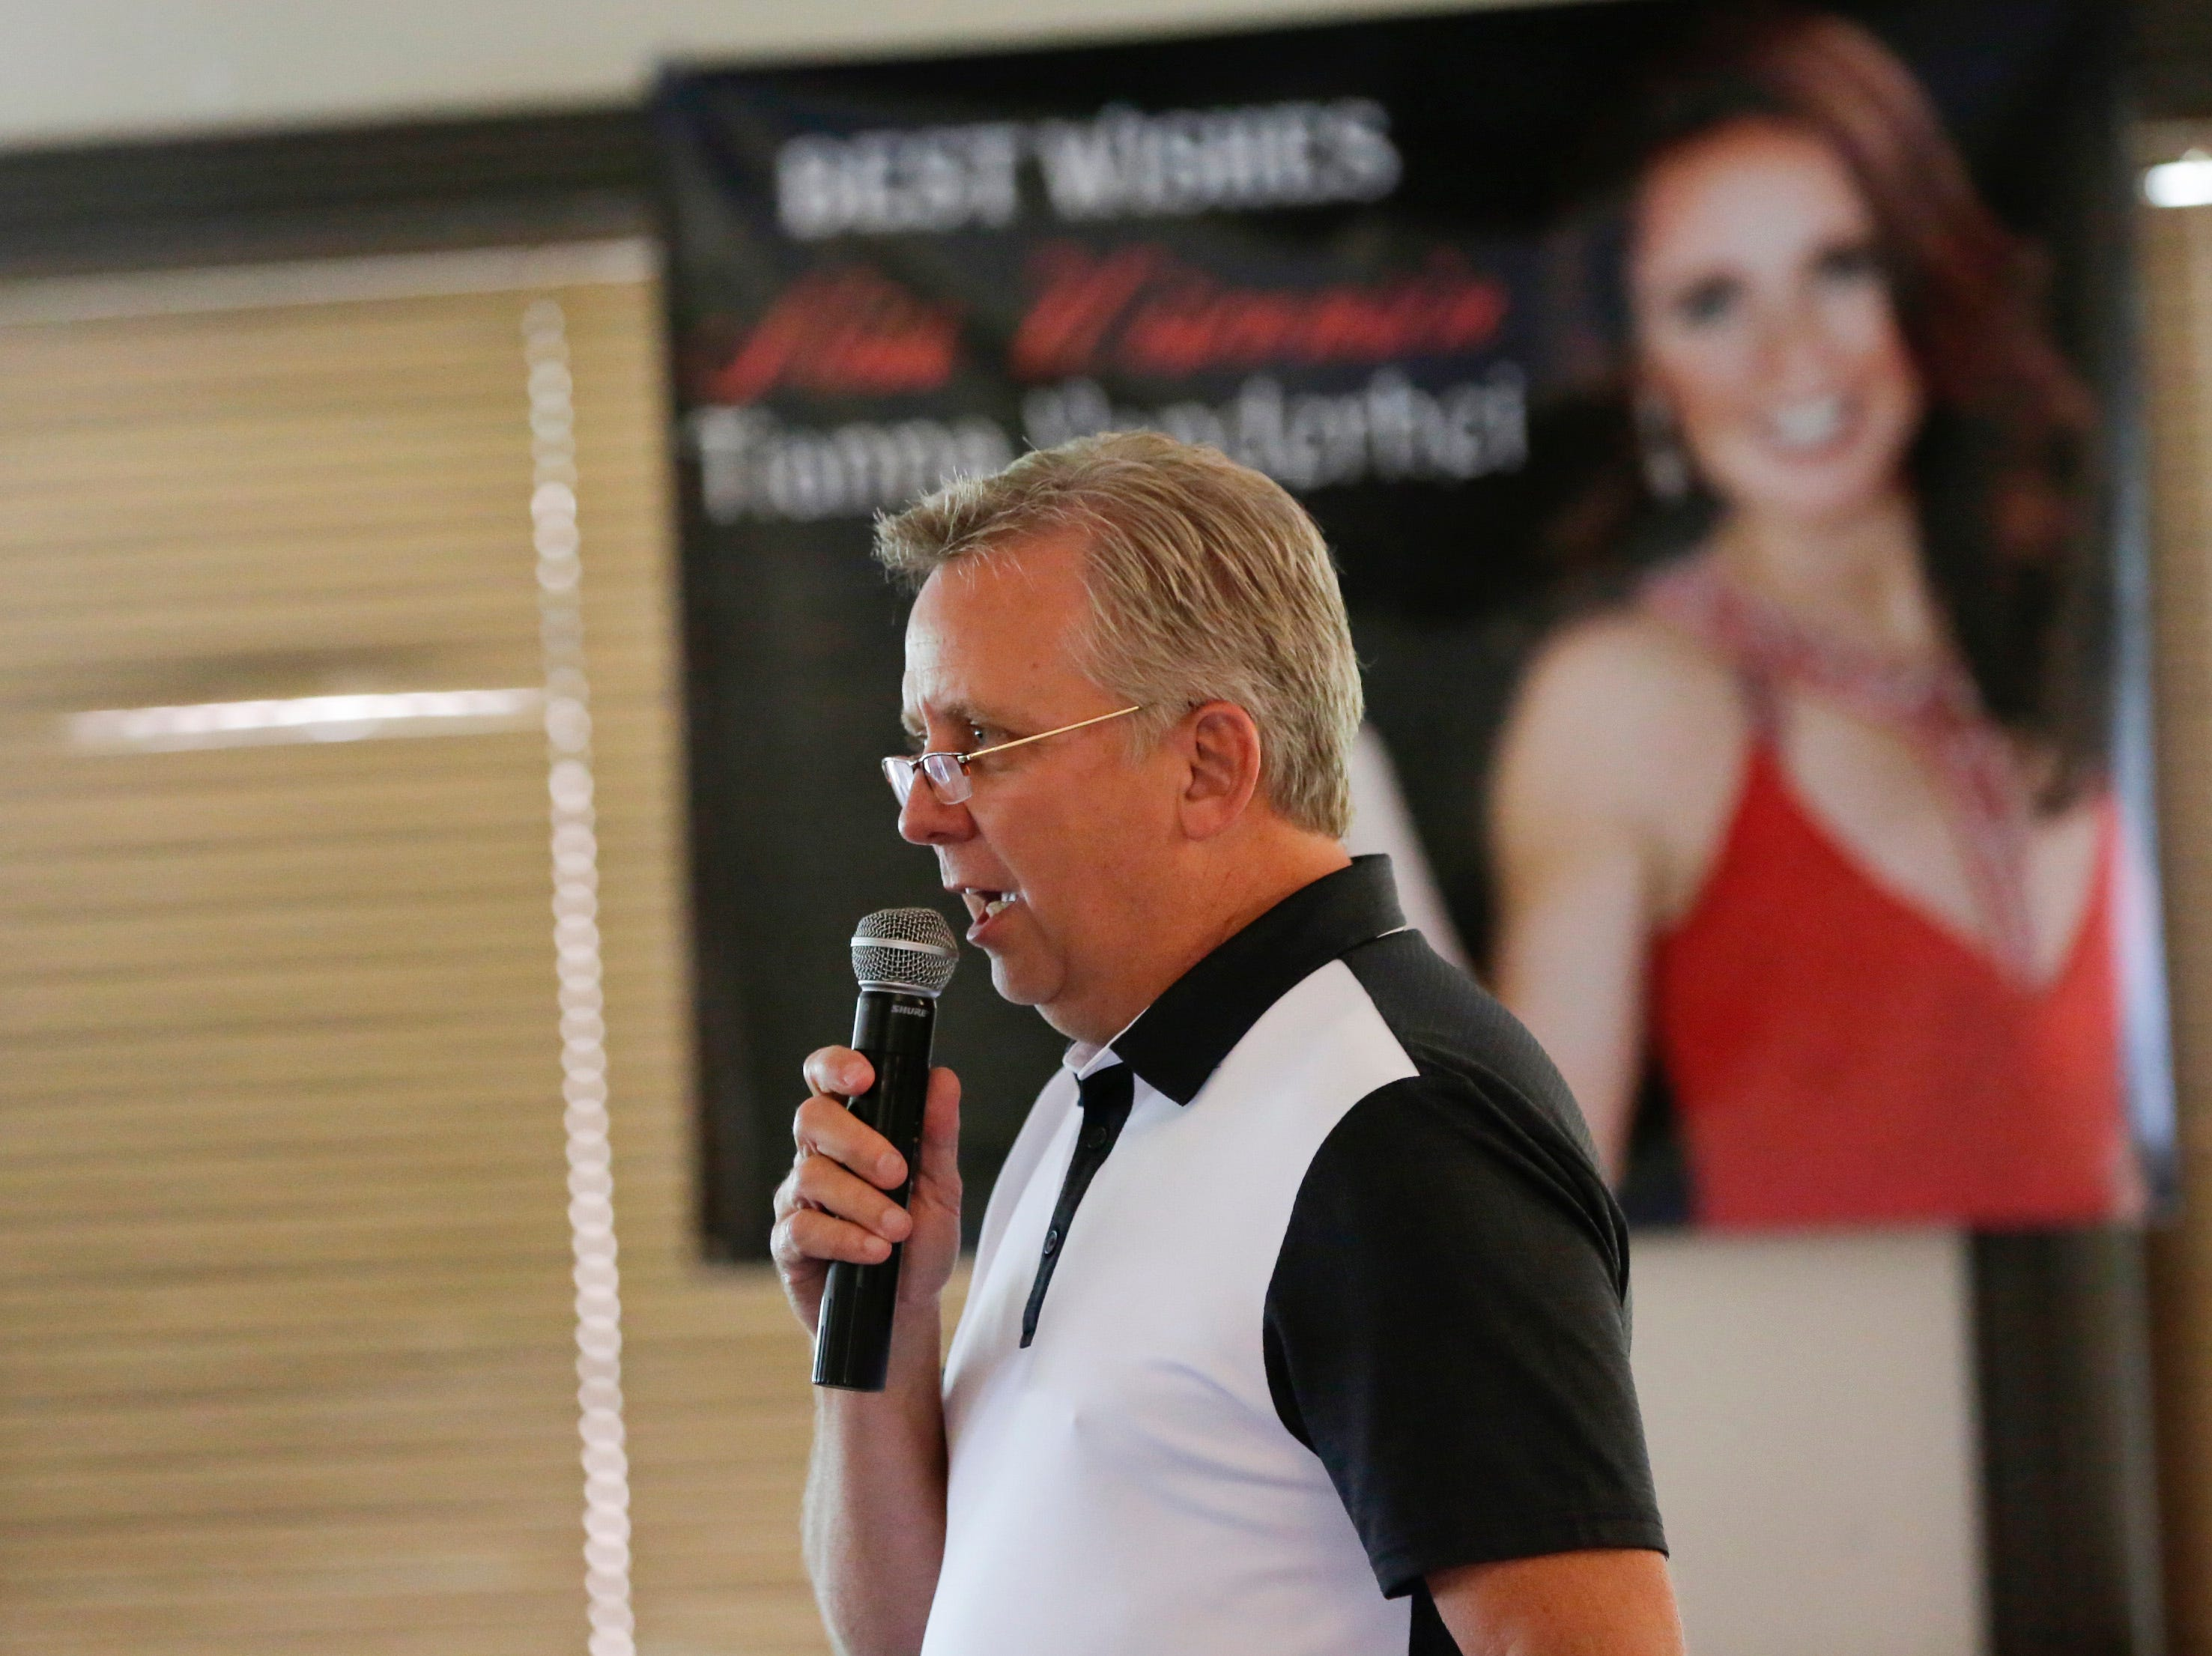 Gary Vanderhei, father of Miss Wisconsin 2018 Tianna Vanderhei, makes a speech at the Miss America send off party for Tianna Vanderhei at Ridges Golf Course and Banquet Facility in Wisconsin Rapids on Sunday, Aug. 12, 2018. Vanderhei will compete in the 2019 Miss America Competition Sunday, Sept. 9, 2018 in Atlantic City, New Jersey.